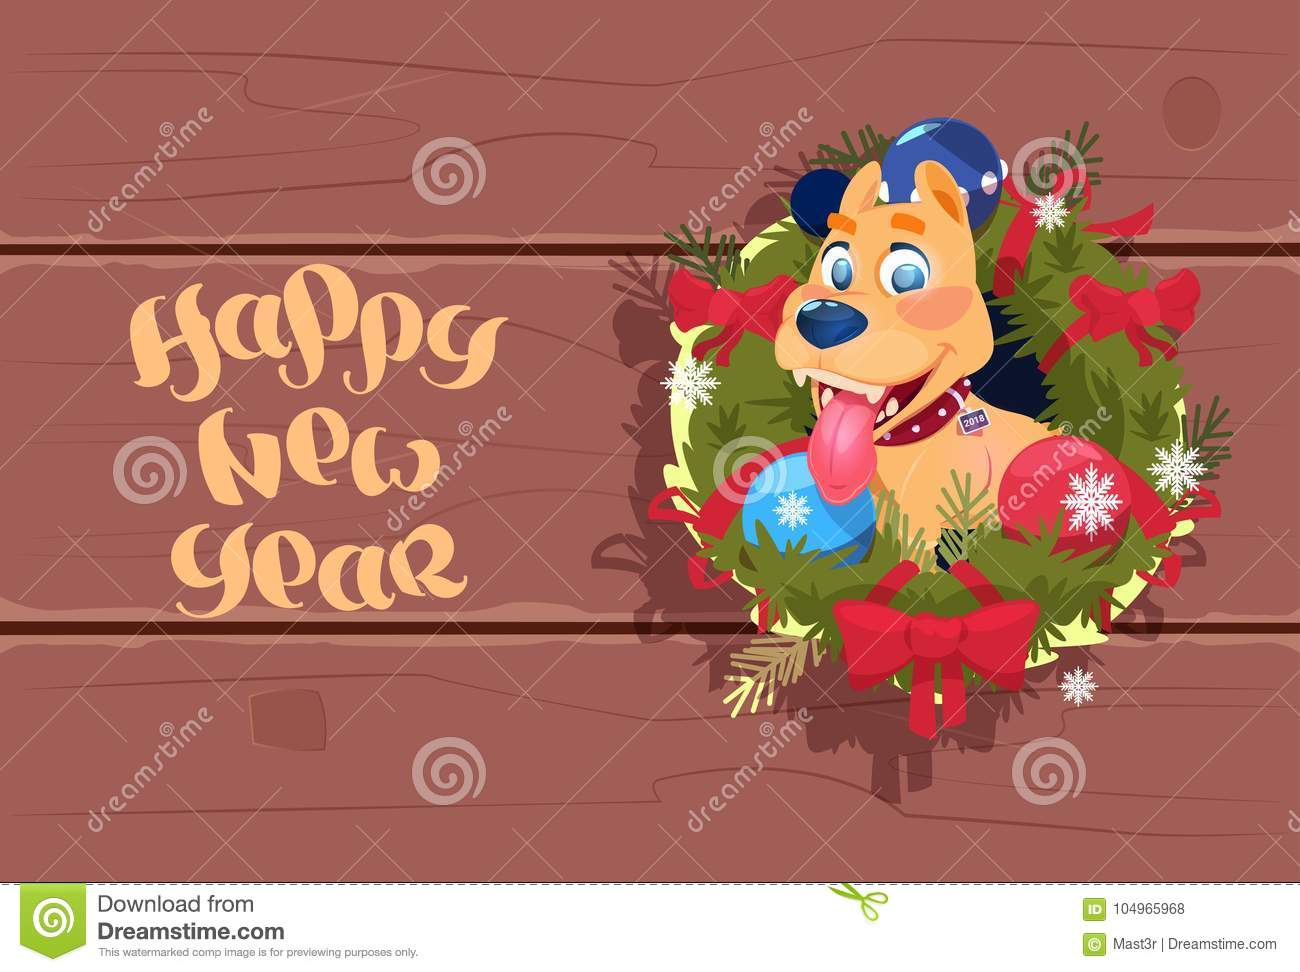 happy new year 2018 banner cute dog in garland on wooden textured background